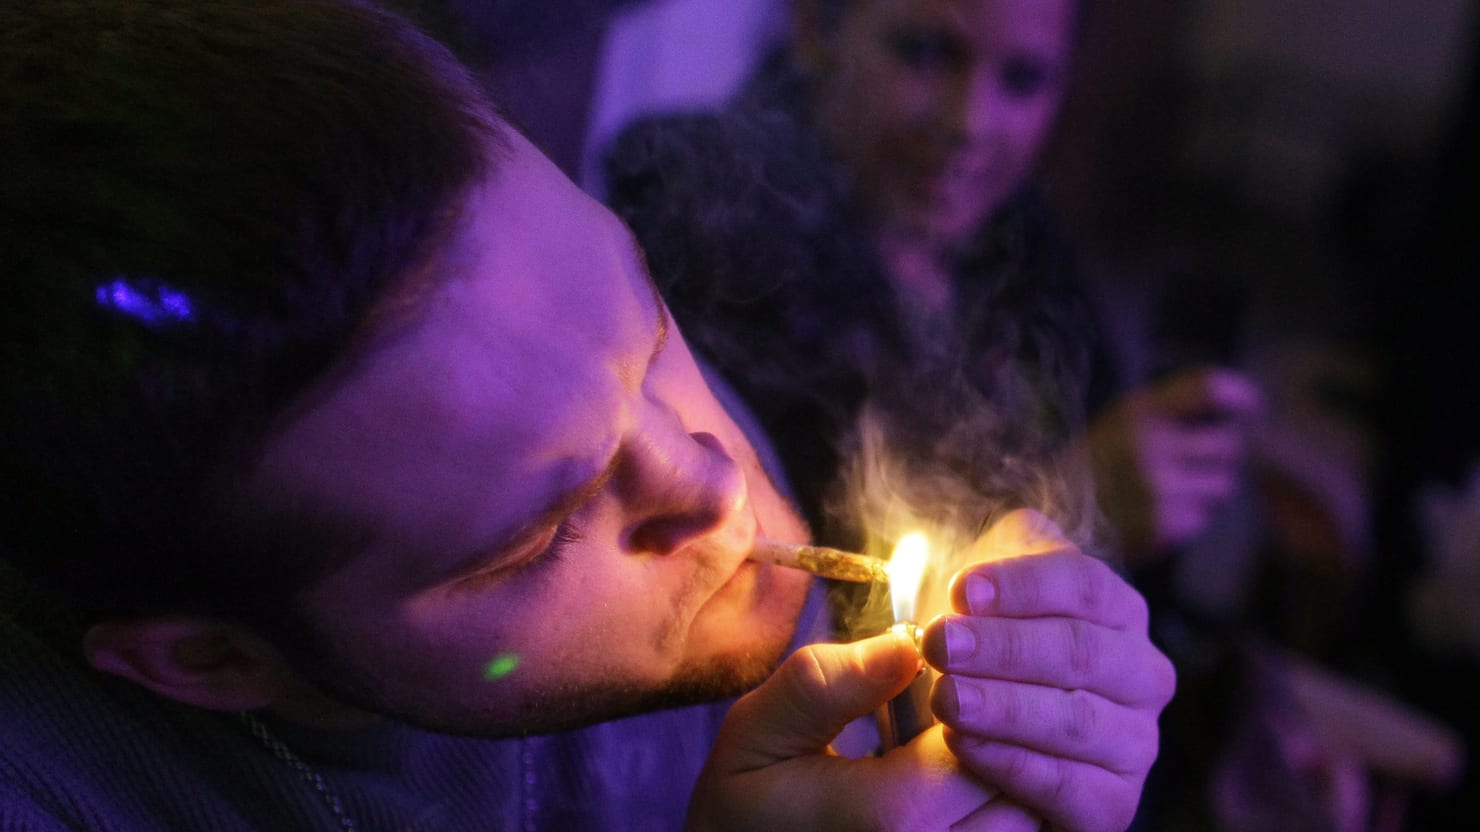 Could You Lose Your Job for Smoking Legal Pot?